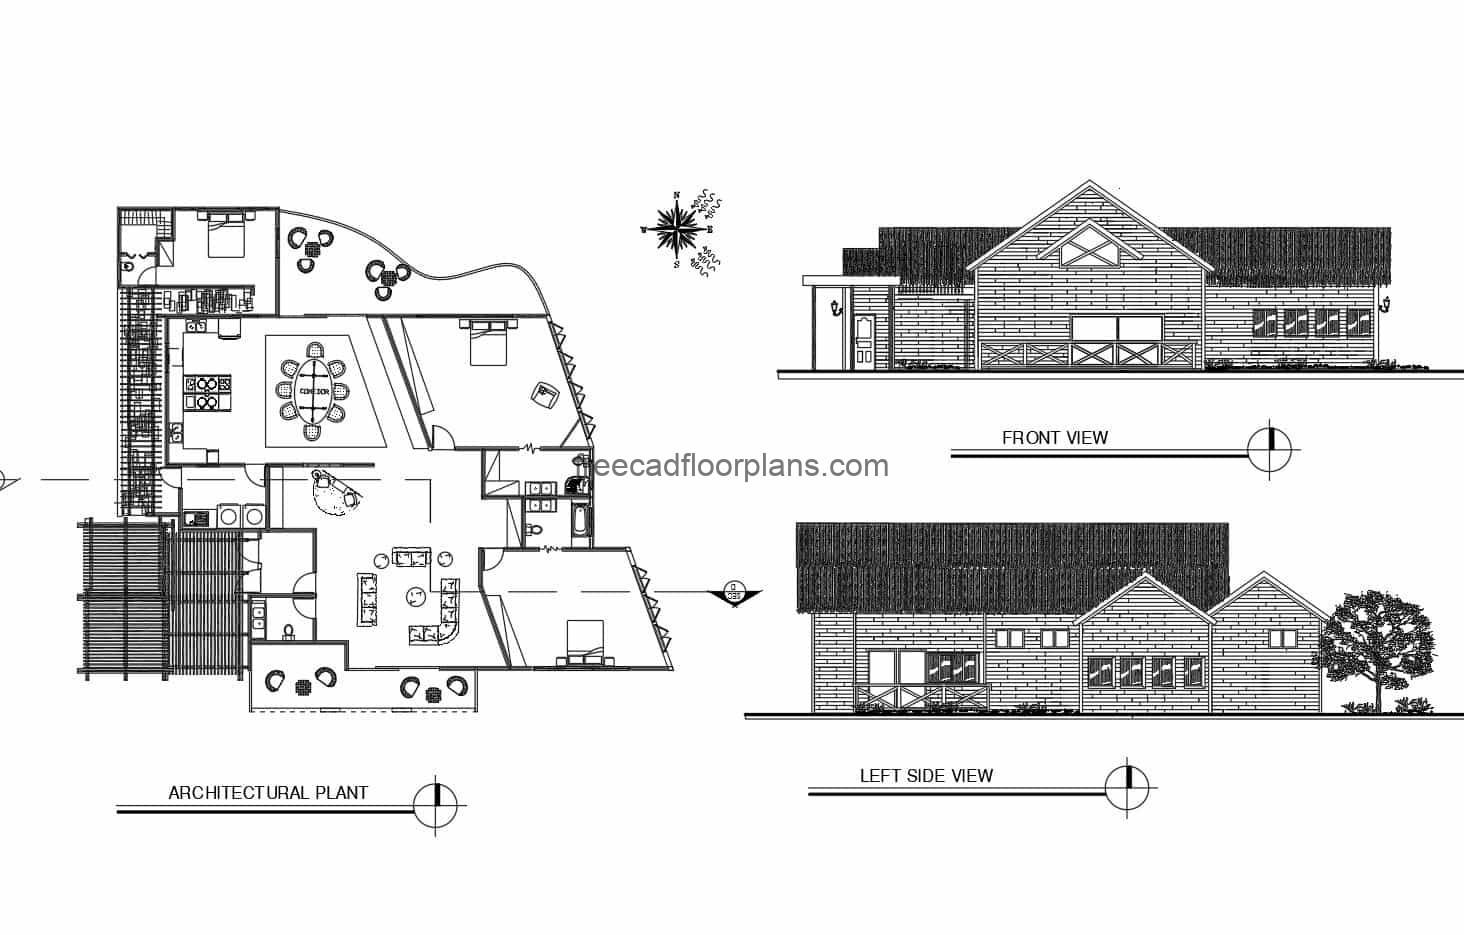 One-level country house plan for free download in DWG format of autocad, architectural plan, dimensions and elevations.